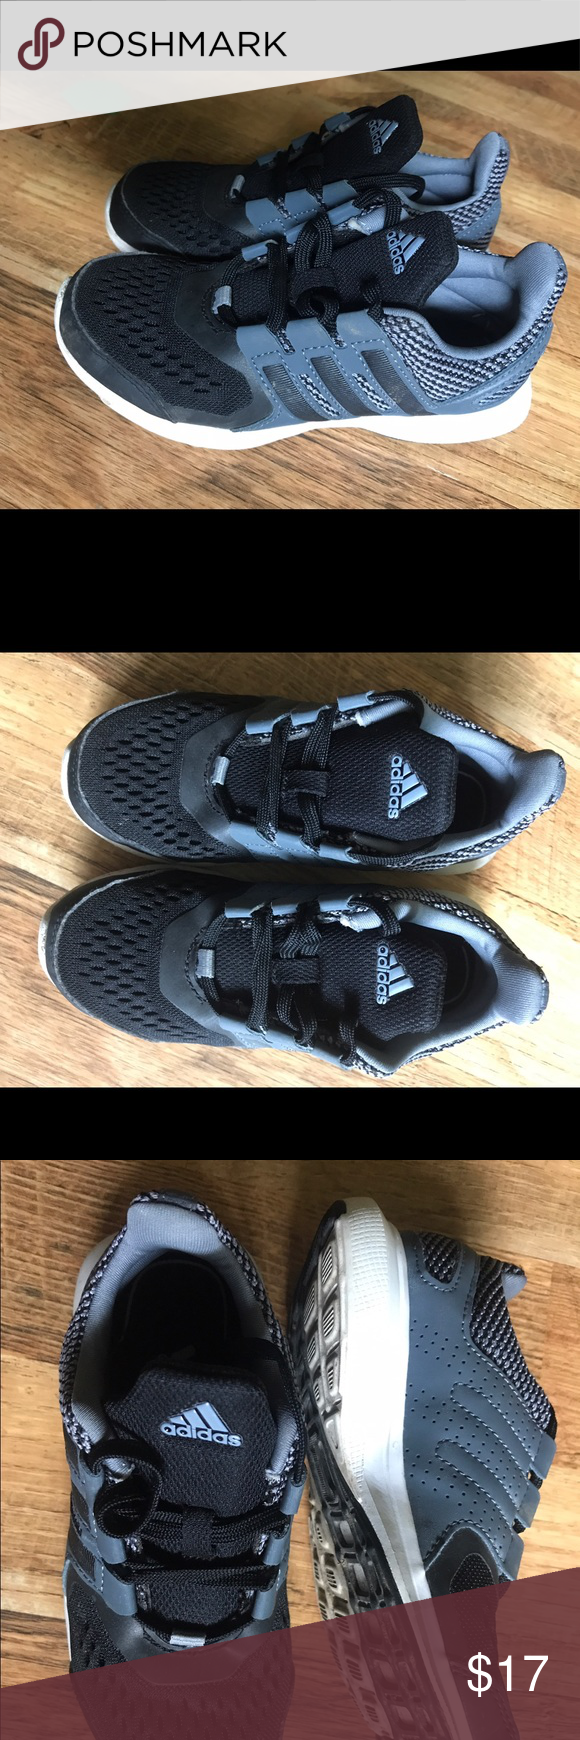 adidas shoes for boys size 13 adidas shoes kids boys